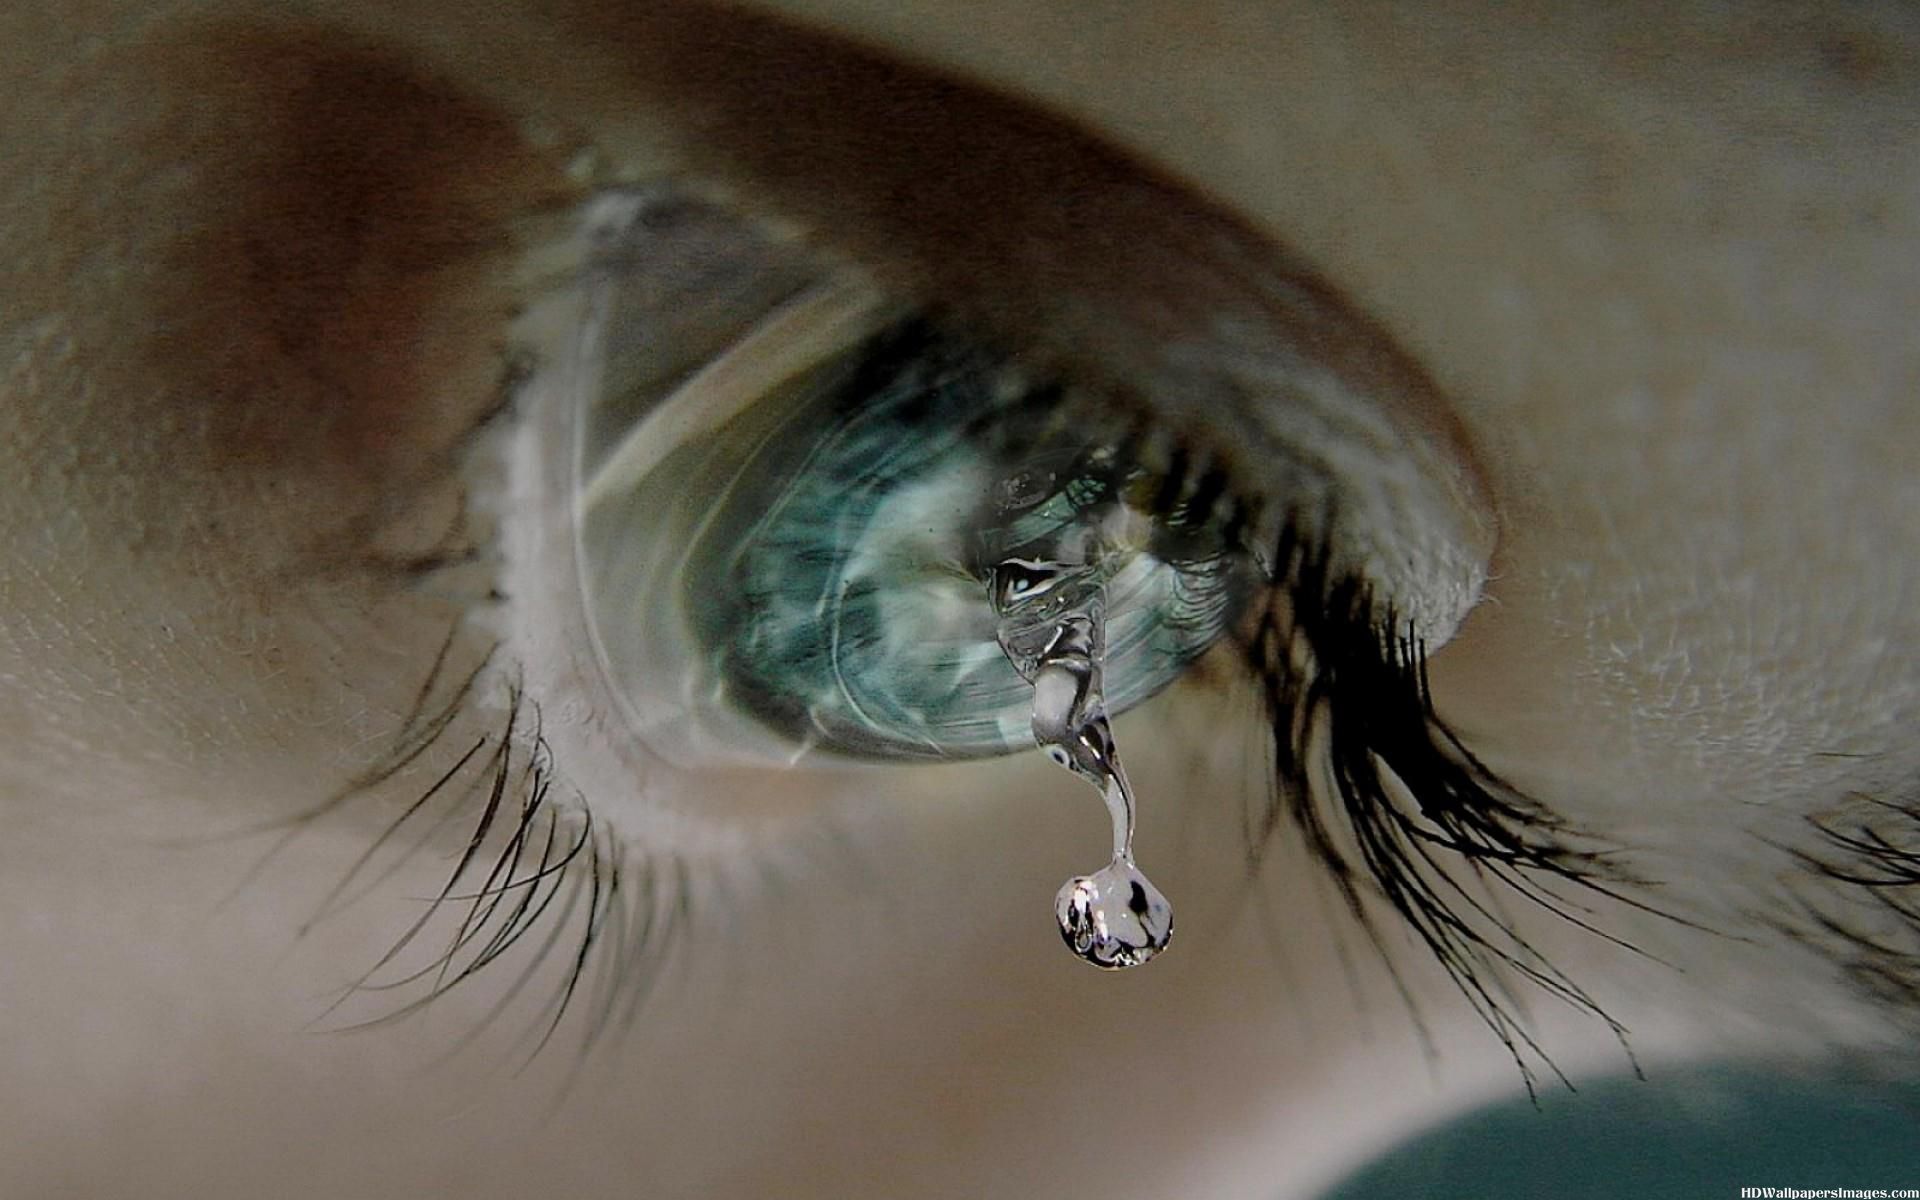 You Can Download Sad Lonely Crying Girl Hd Wallpapers For Facebook